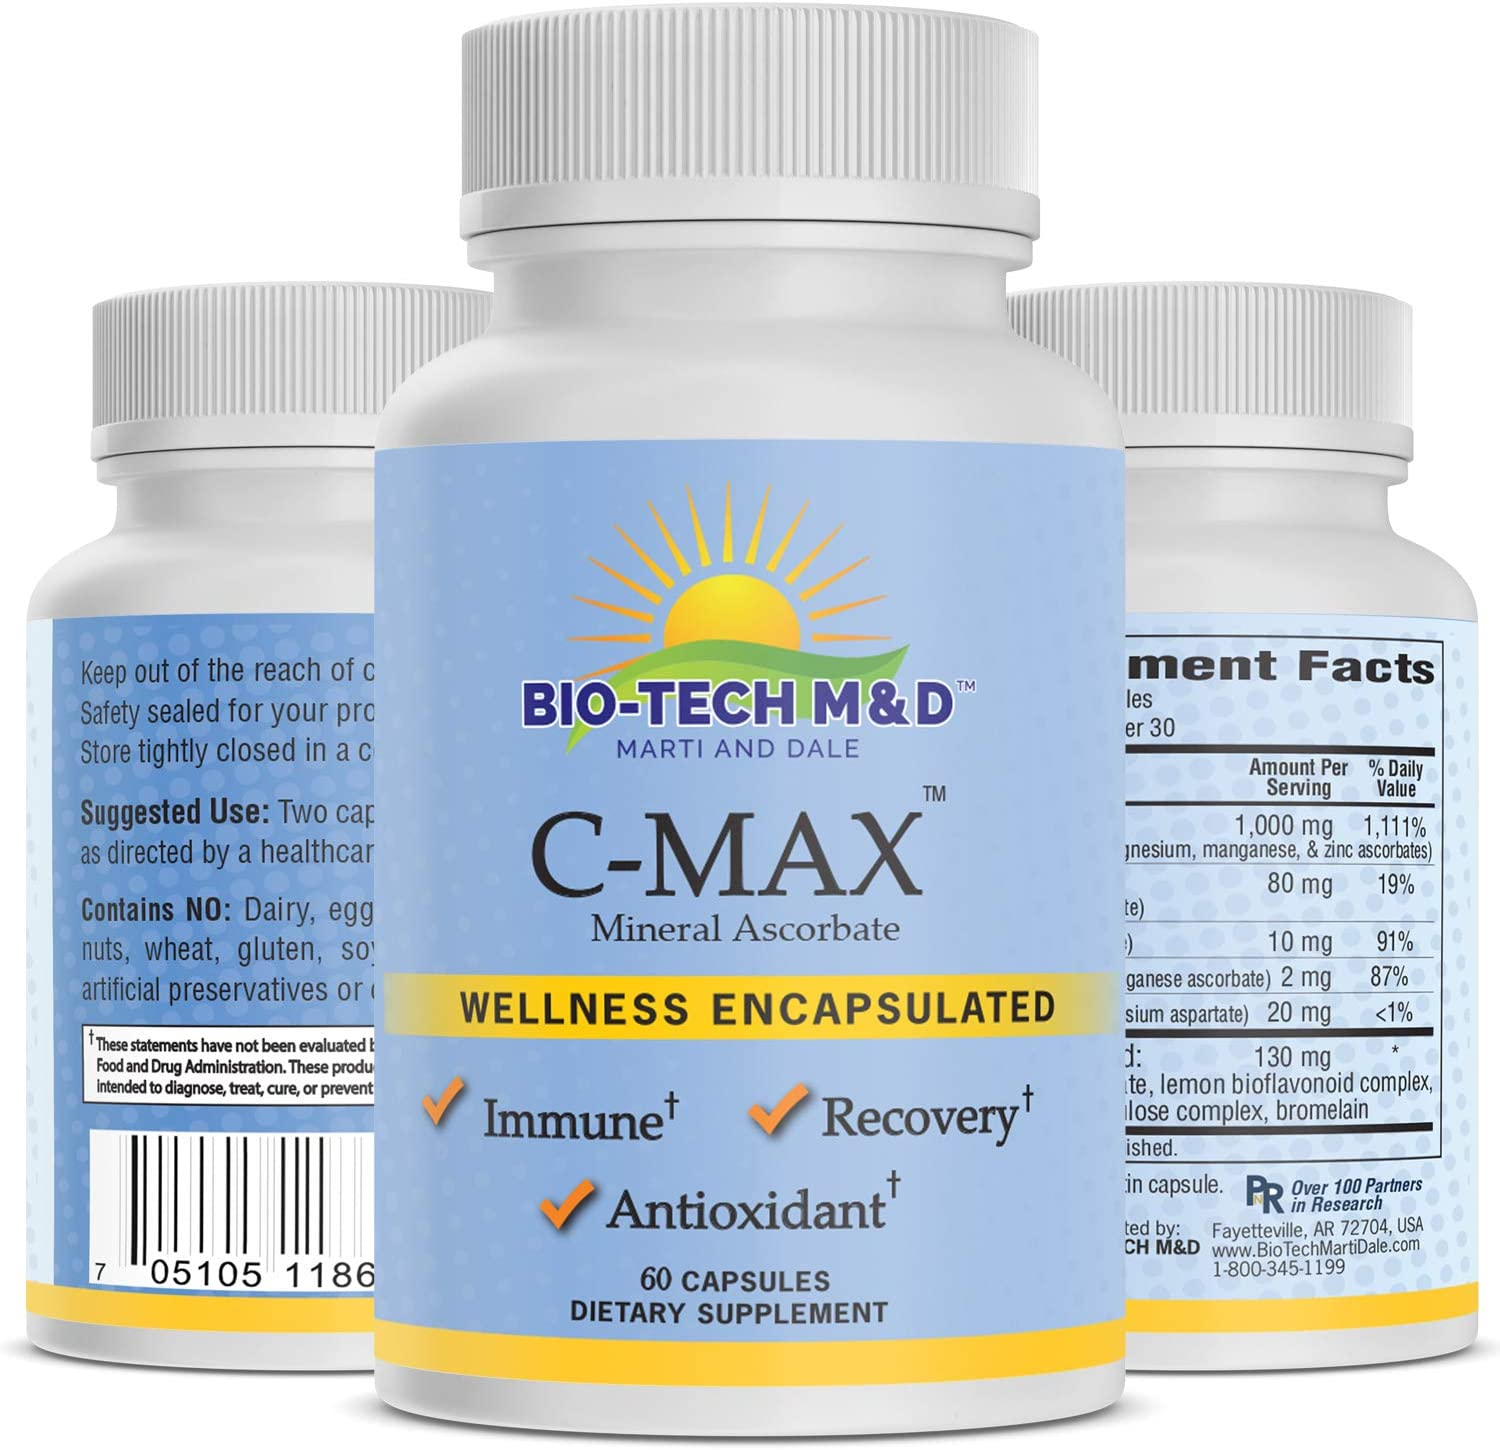 C-Max Vitamin C Dietary supplement ascorbic acid essential nutrient powerful antioxidant for immune system natural citrus bioflavonoid normal histamine levels blood vessels bones tissue repair - 60 Ca